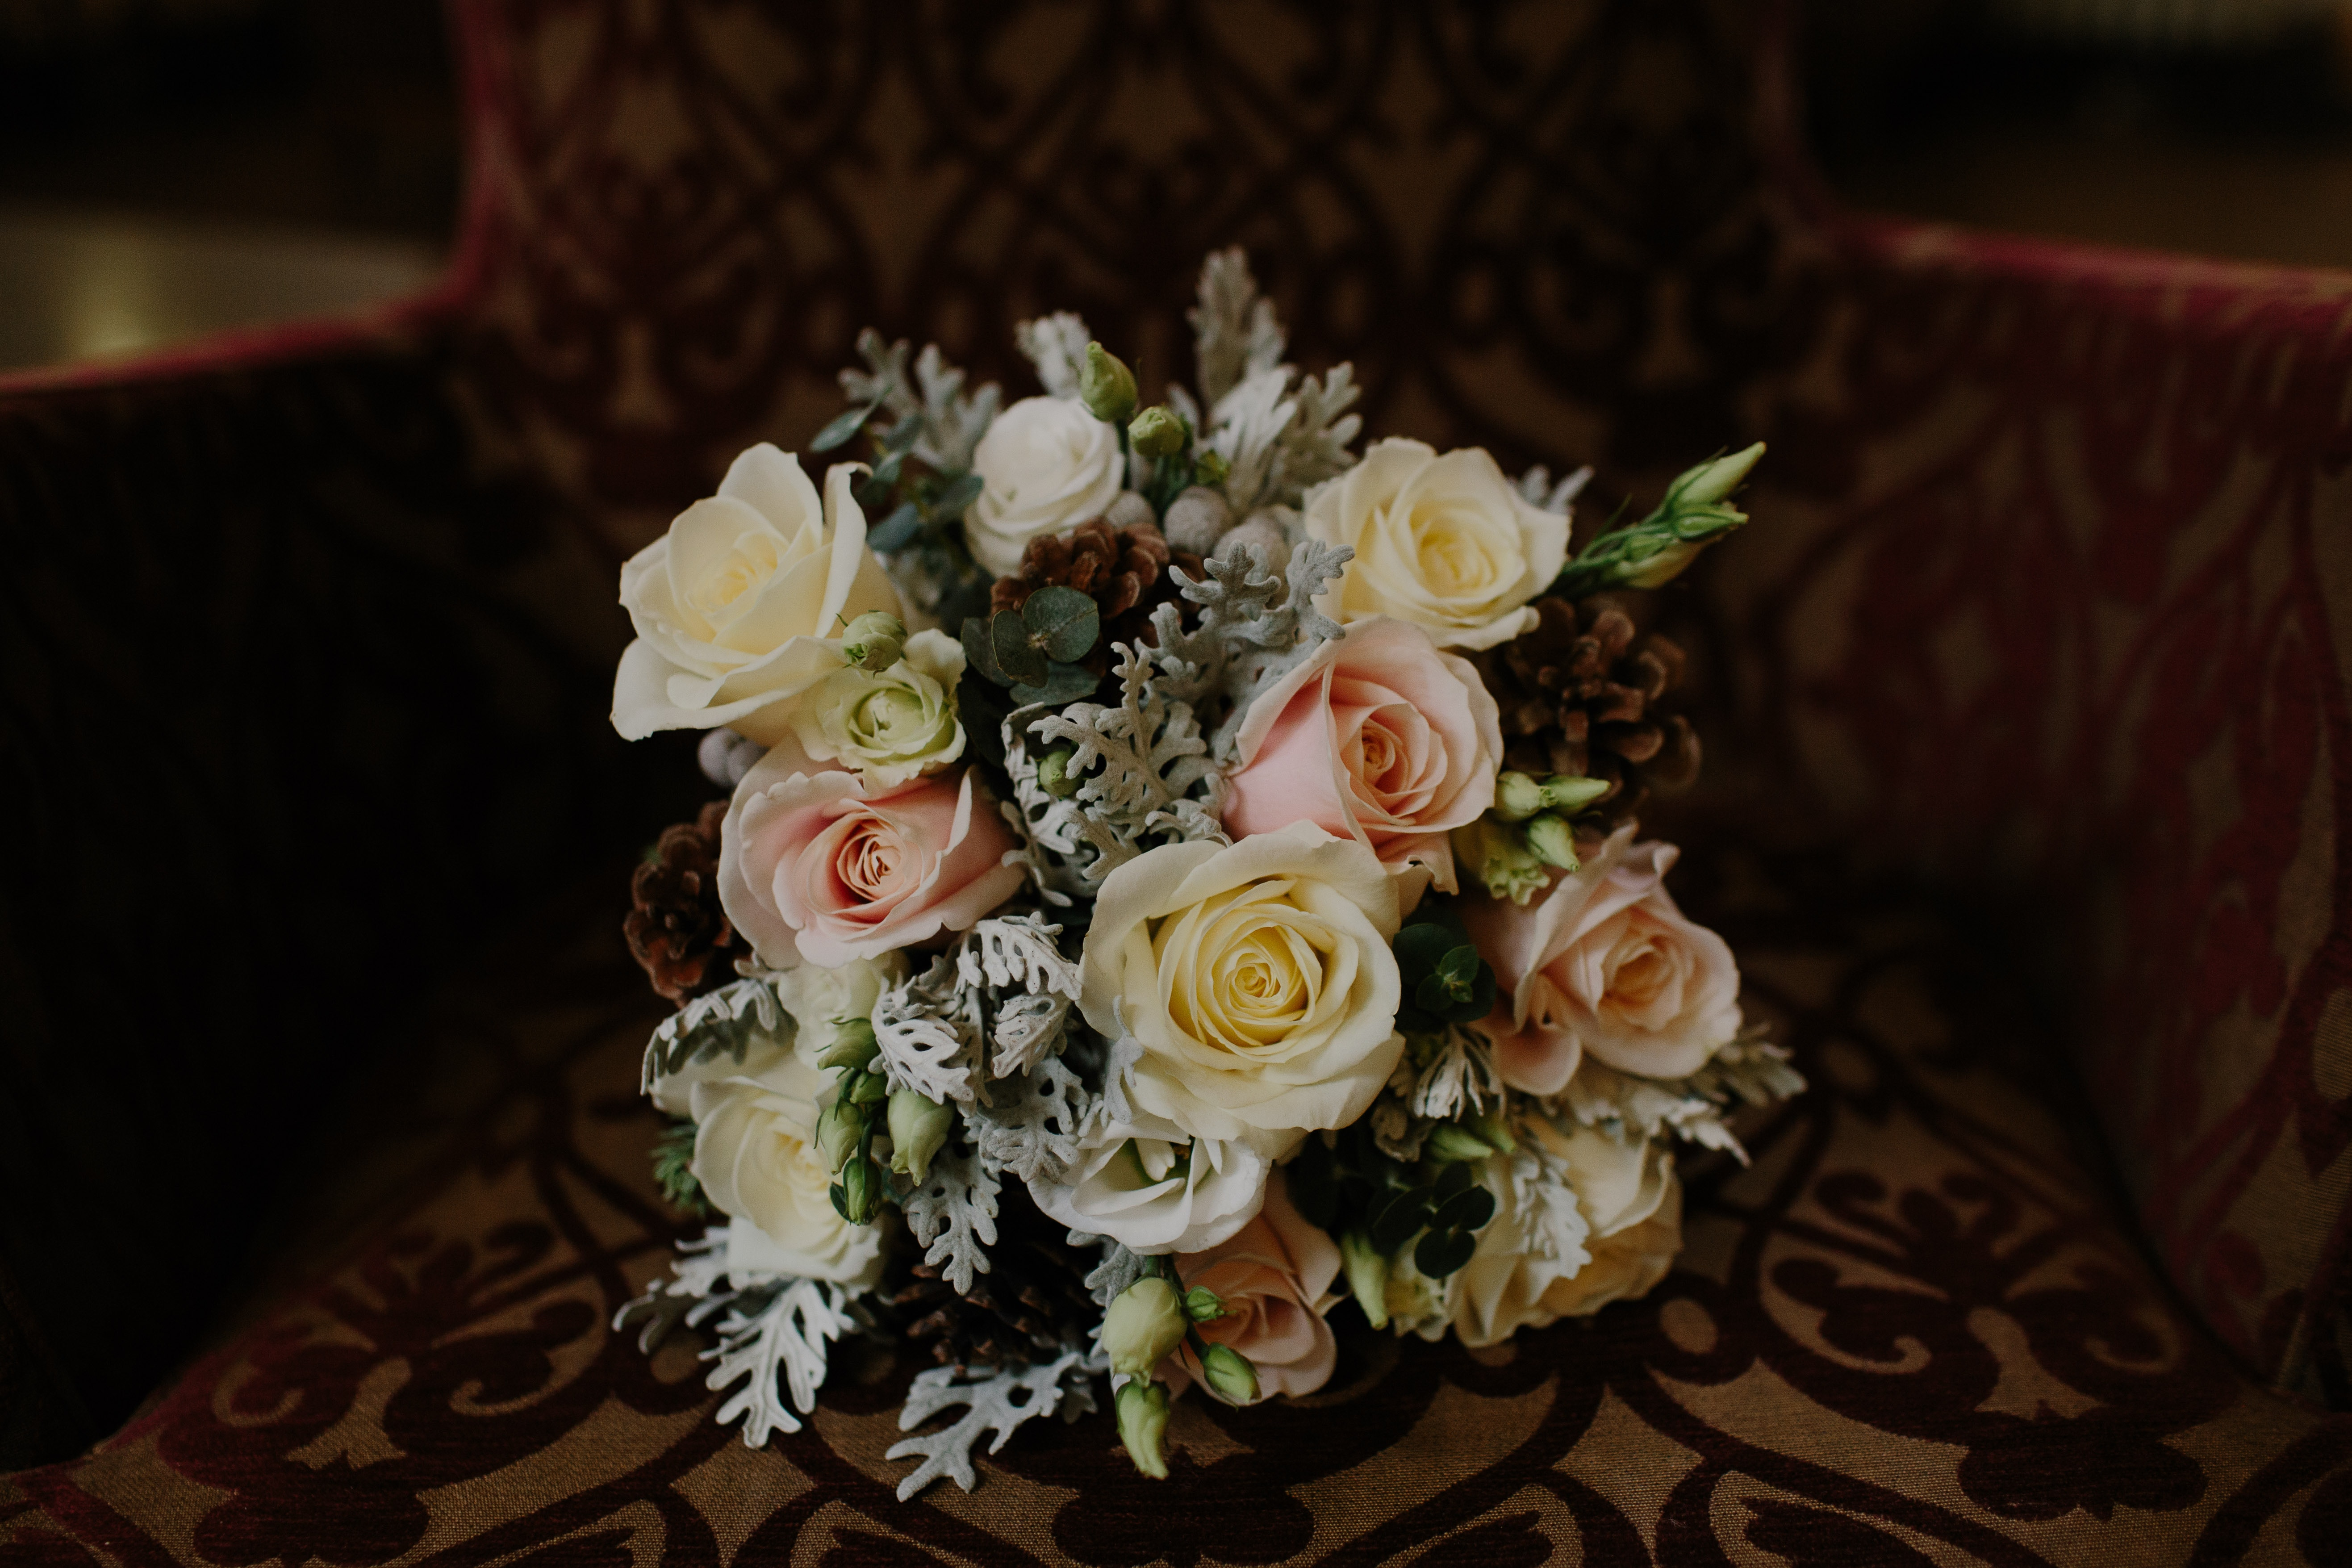 144940 download wallpaper Flowers, Roses, Registration, Typography, Bouquet, Composition screensavers and pictures for free